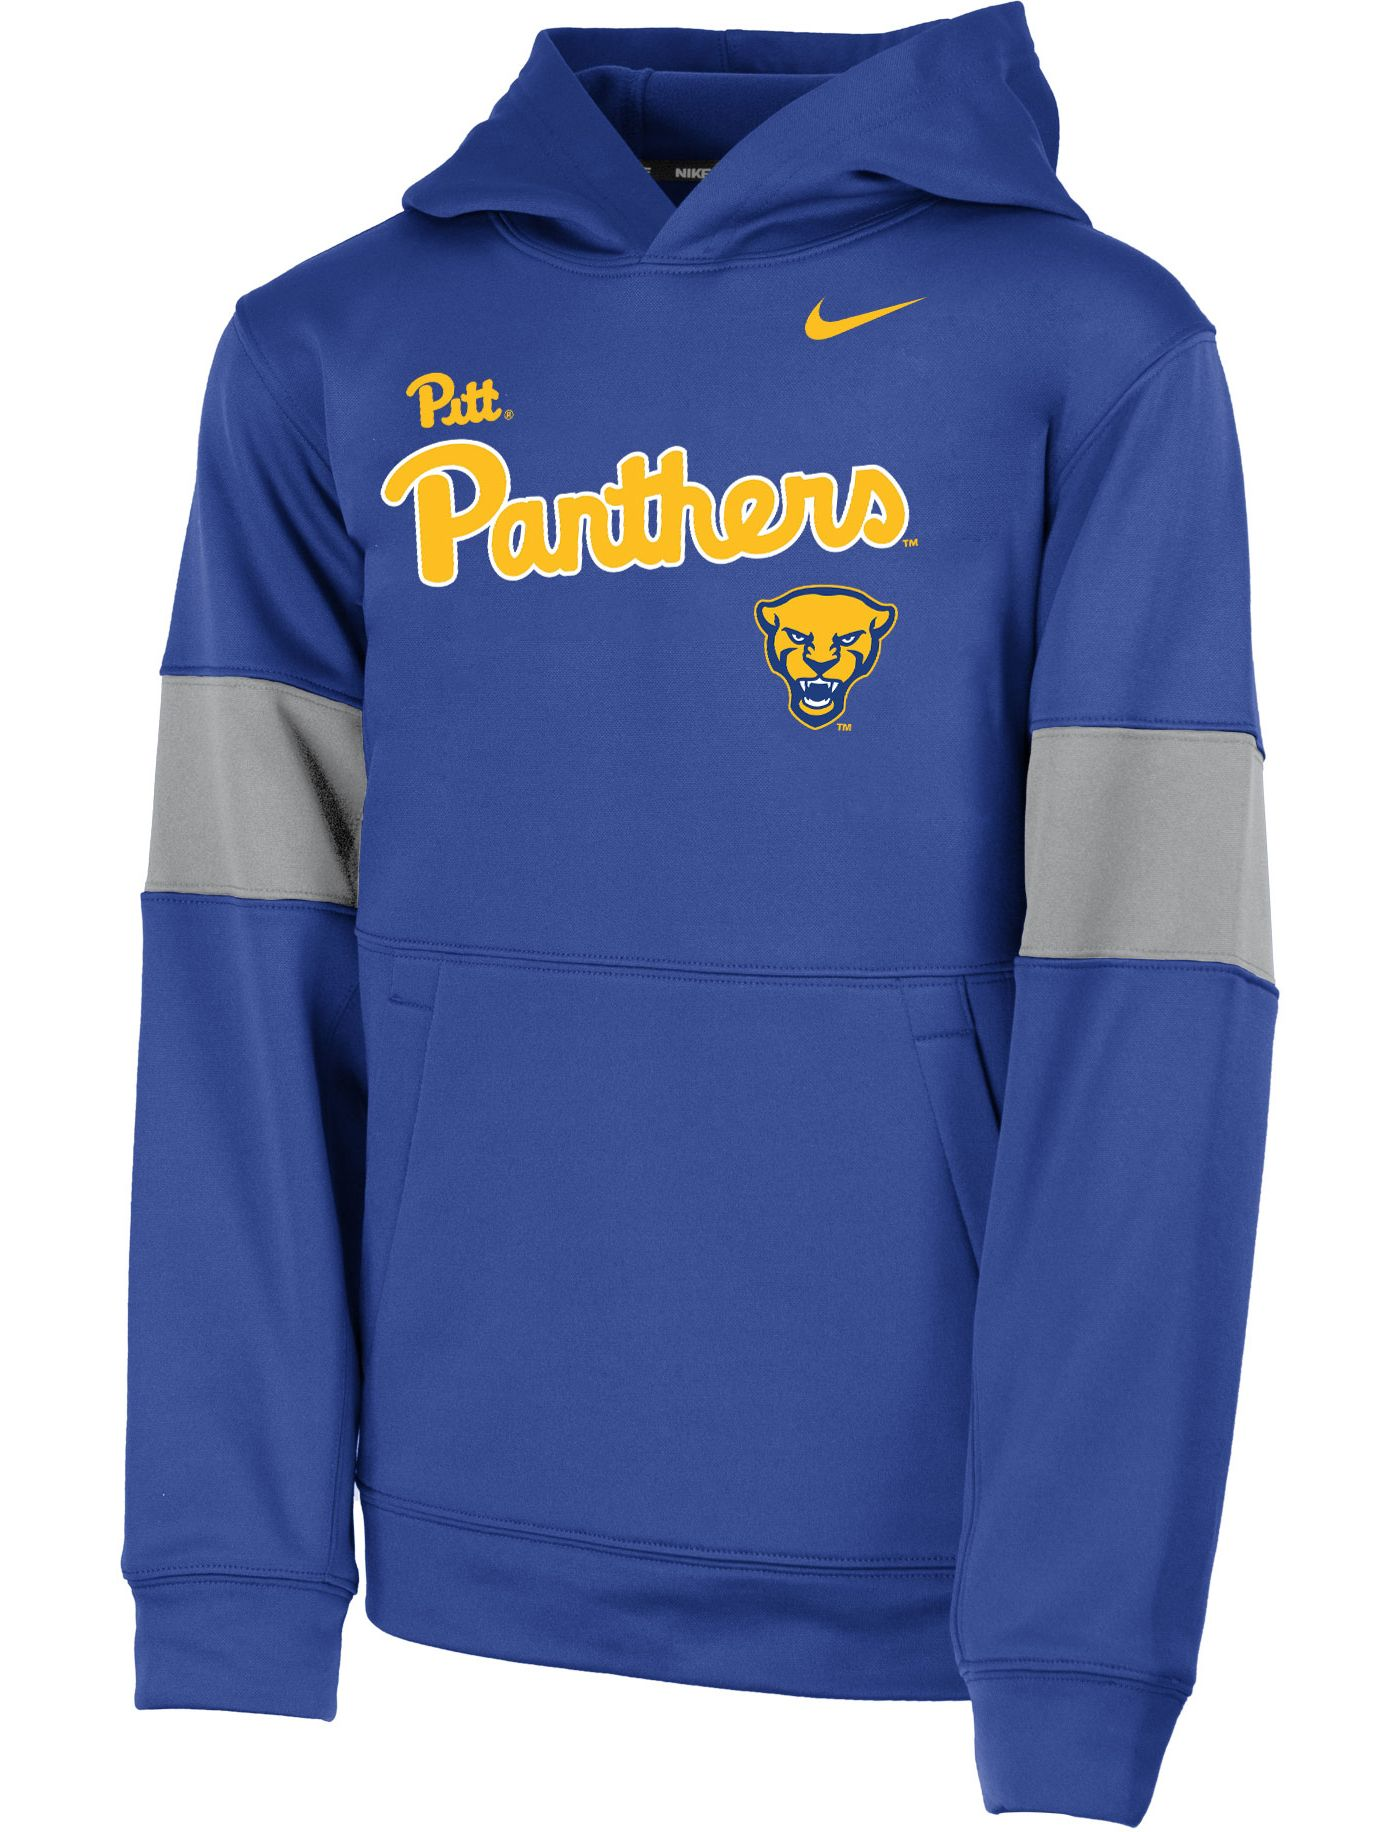 Nike Youth Pitt Panthers Blue Therma Football Sideline Pullover Hoodie